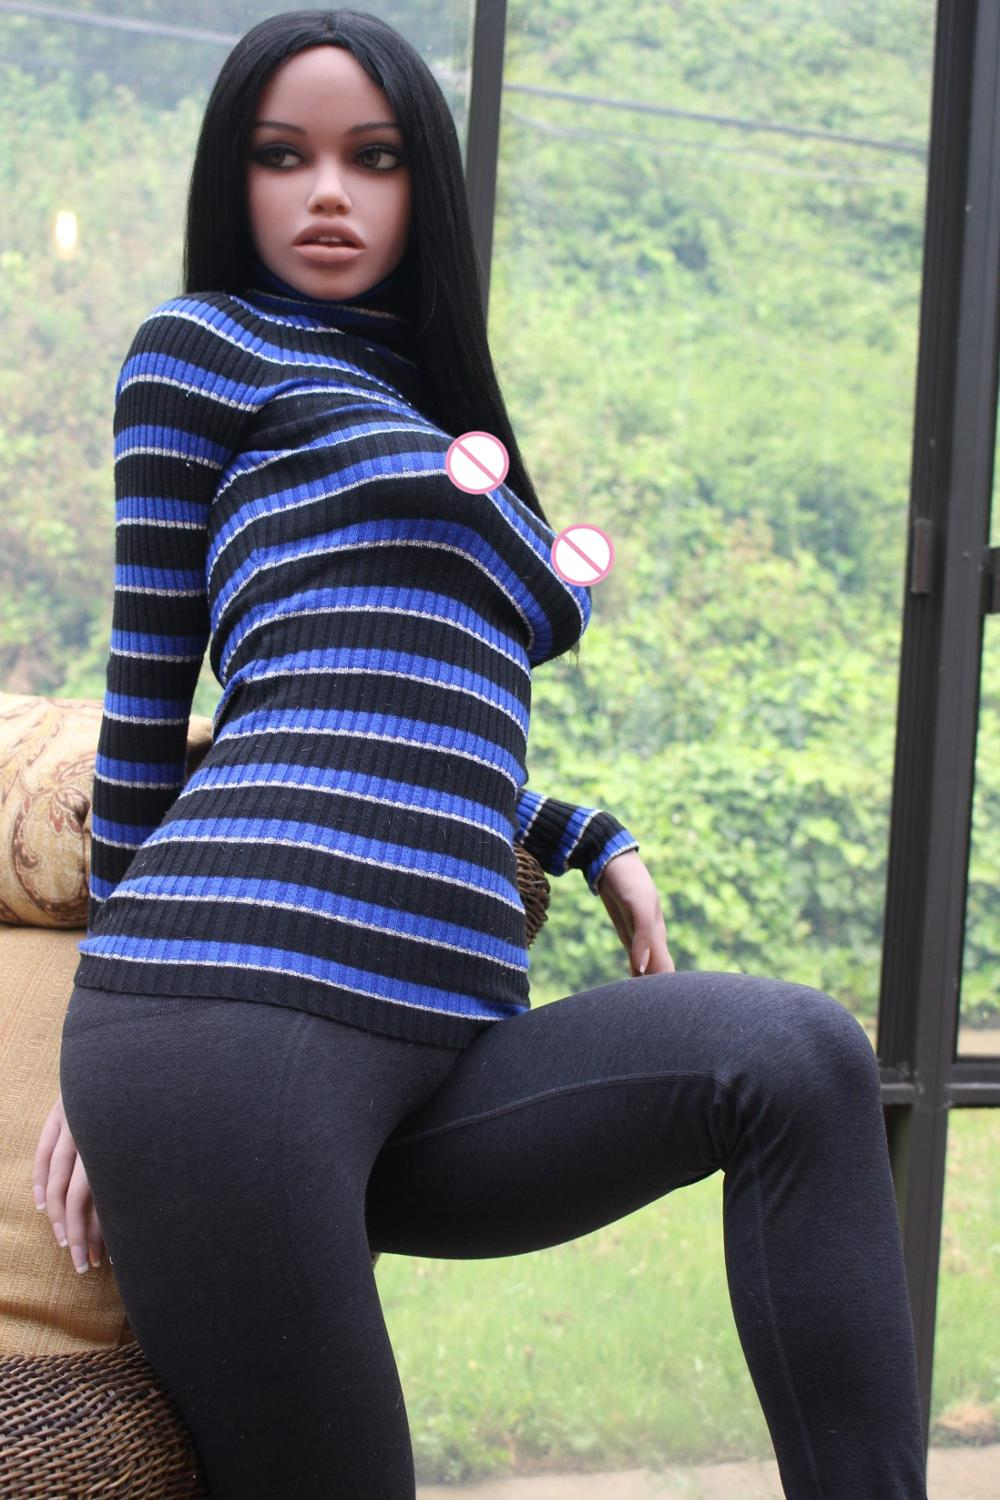 Image 5 - 163CM #Jane love doll TPE and metal skeleton doll with round ass  sex doll full size love adult dollsSex Dolls   -